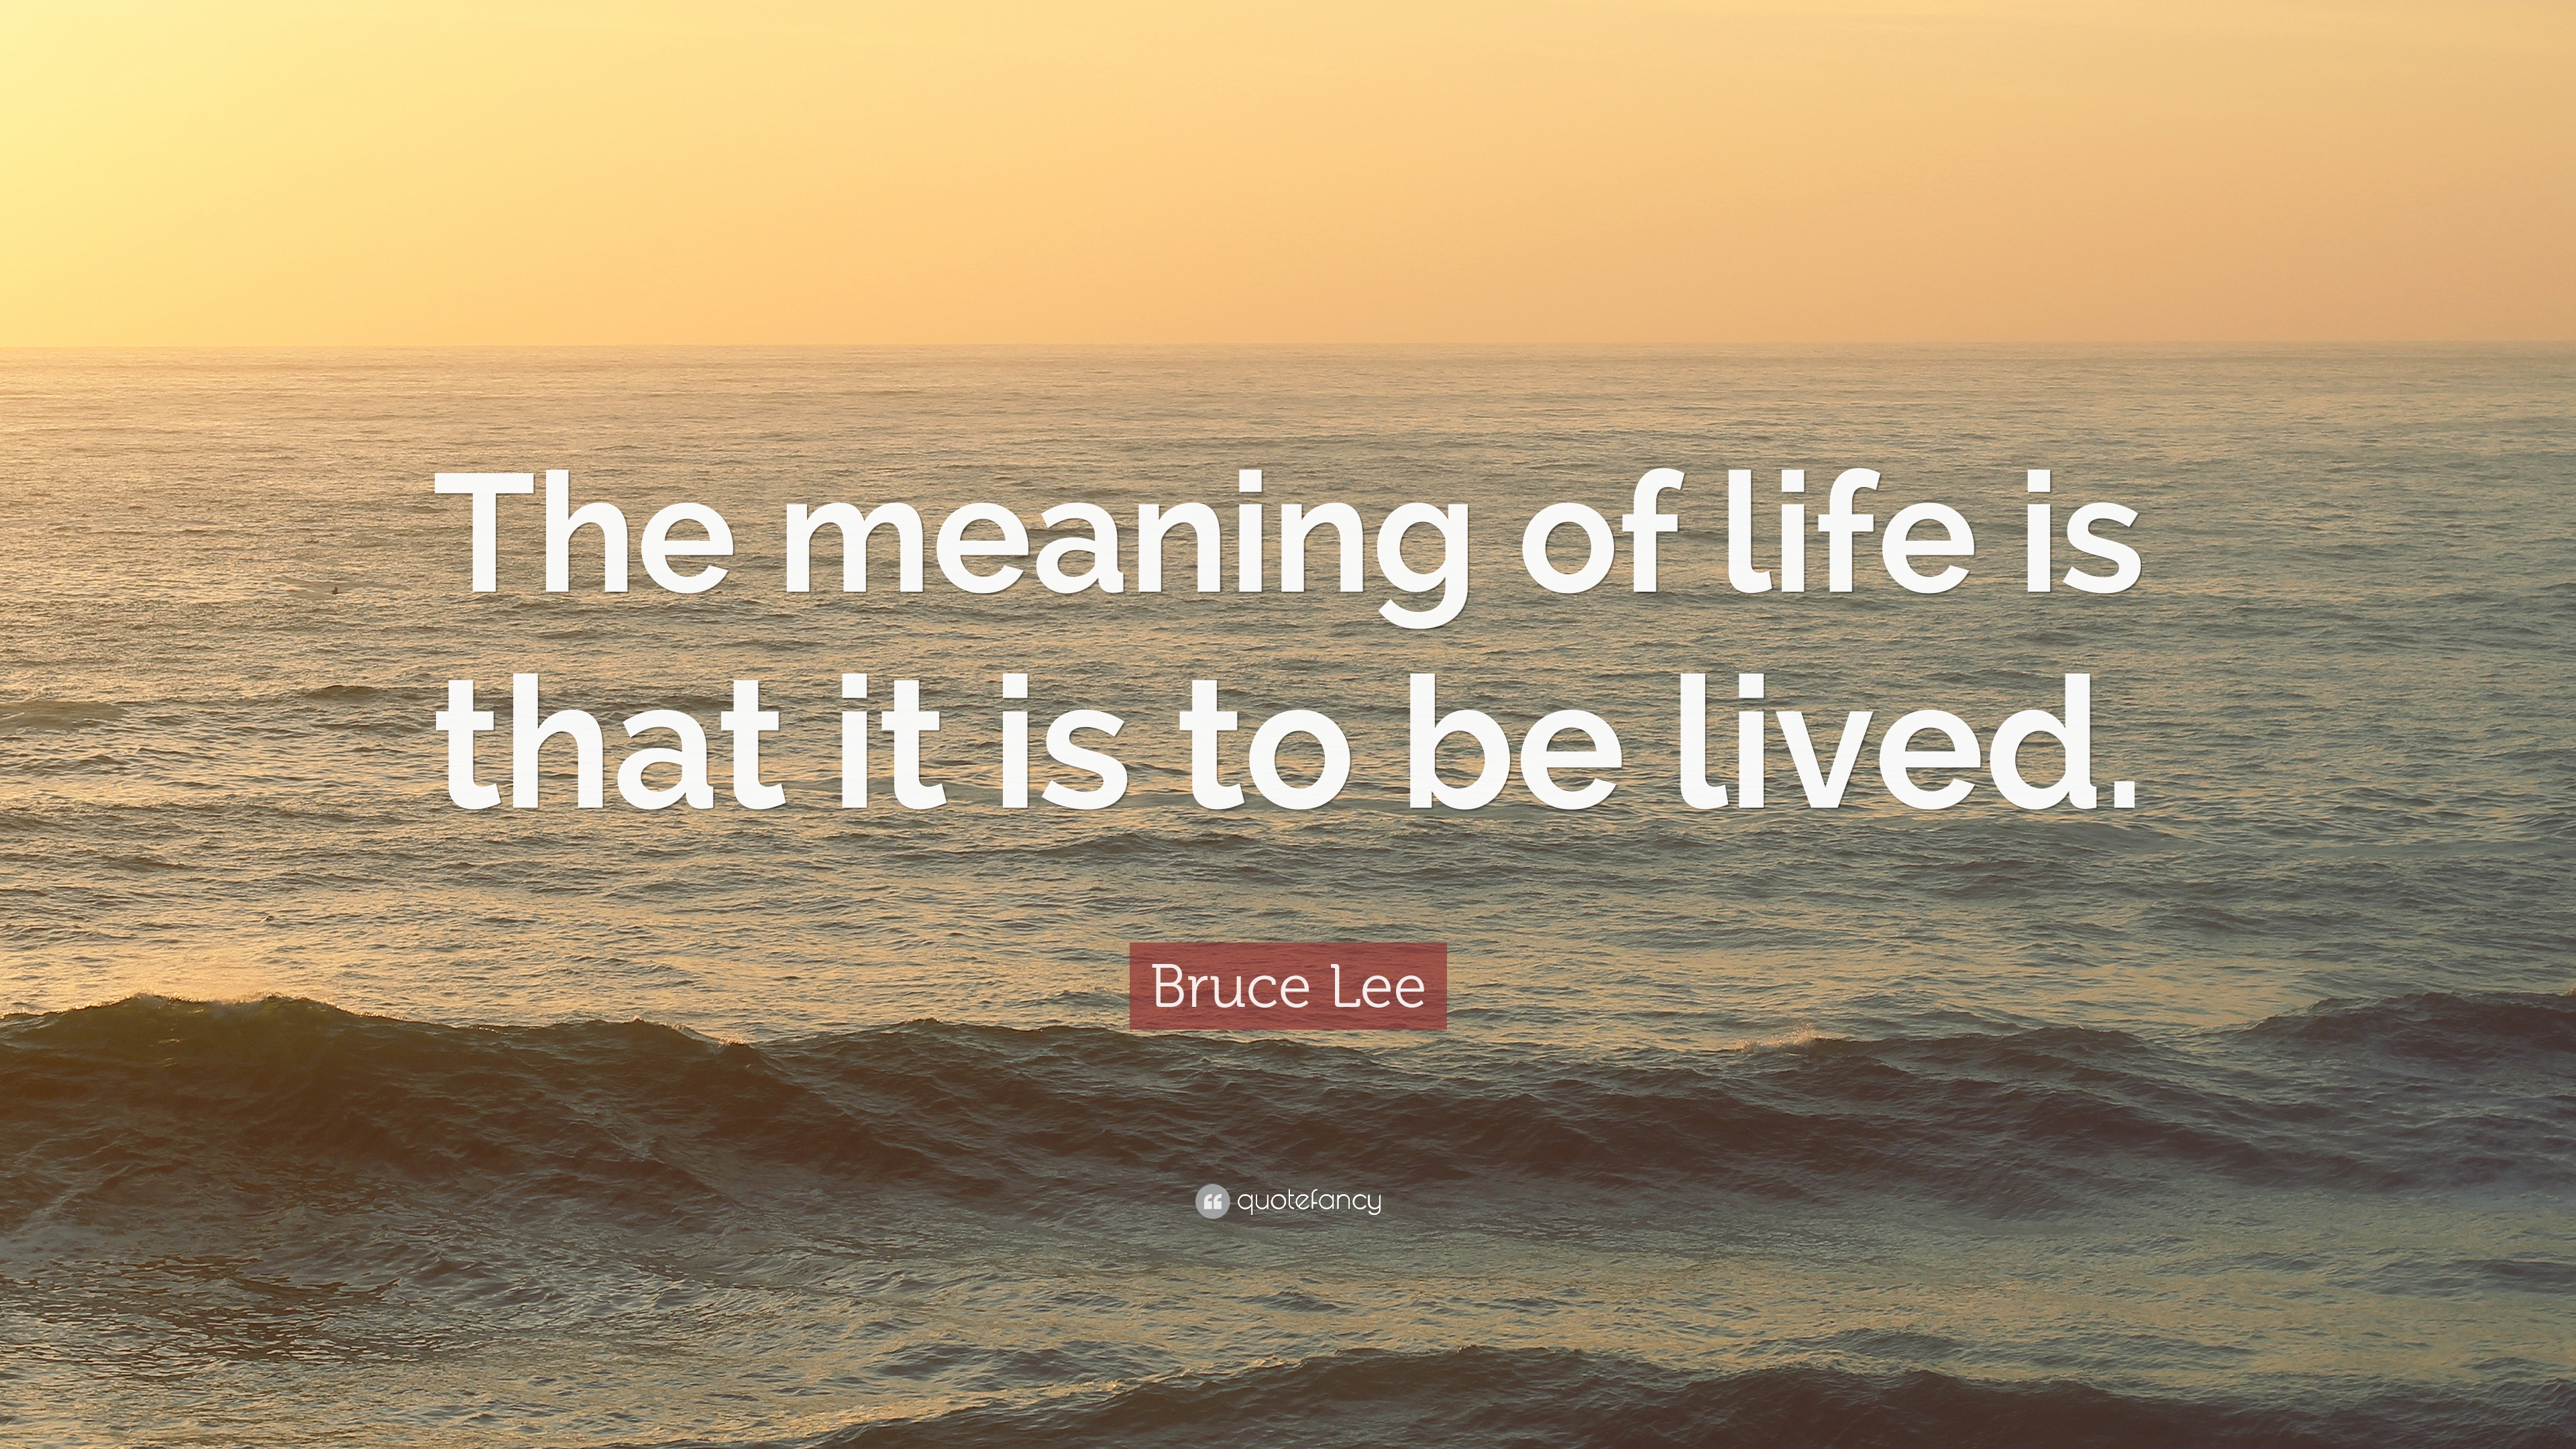 Quotes Meaning Amusing Meaning Of Life Quotes 40 Wallpapers  Quotefancy